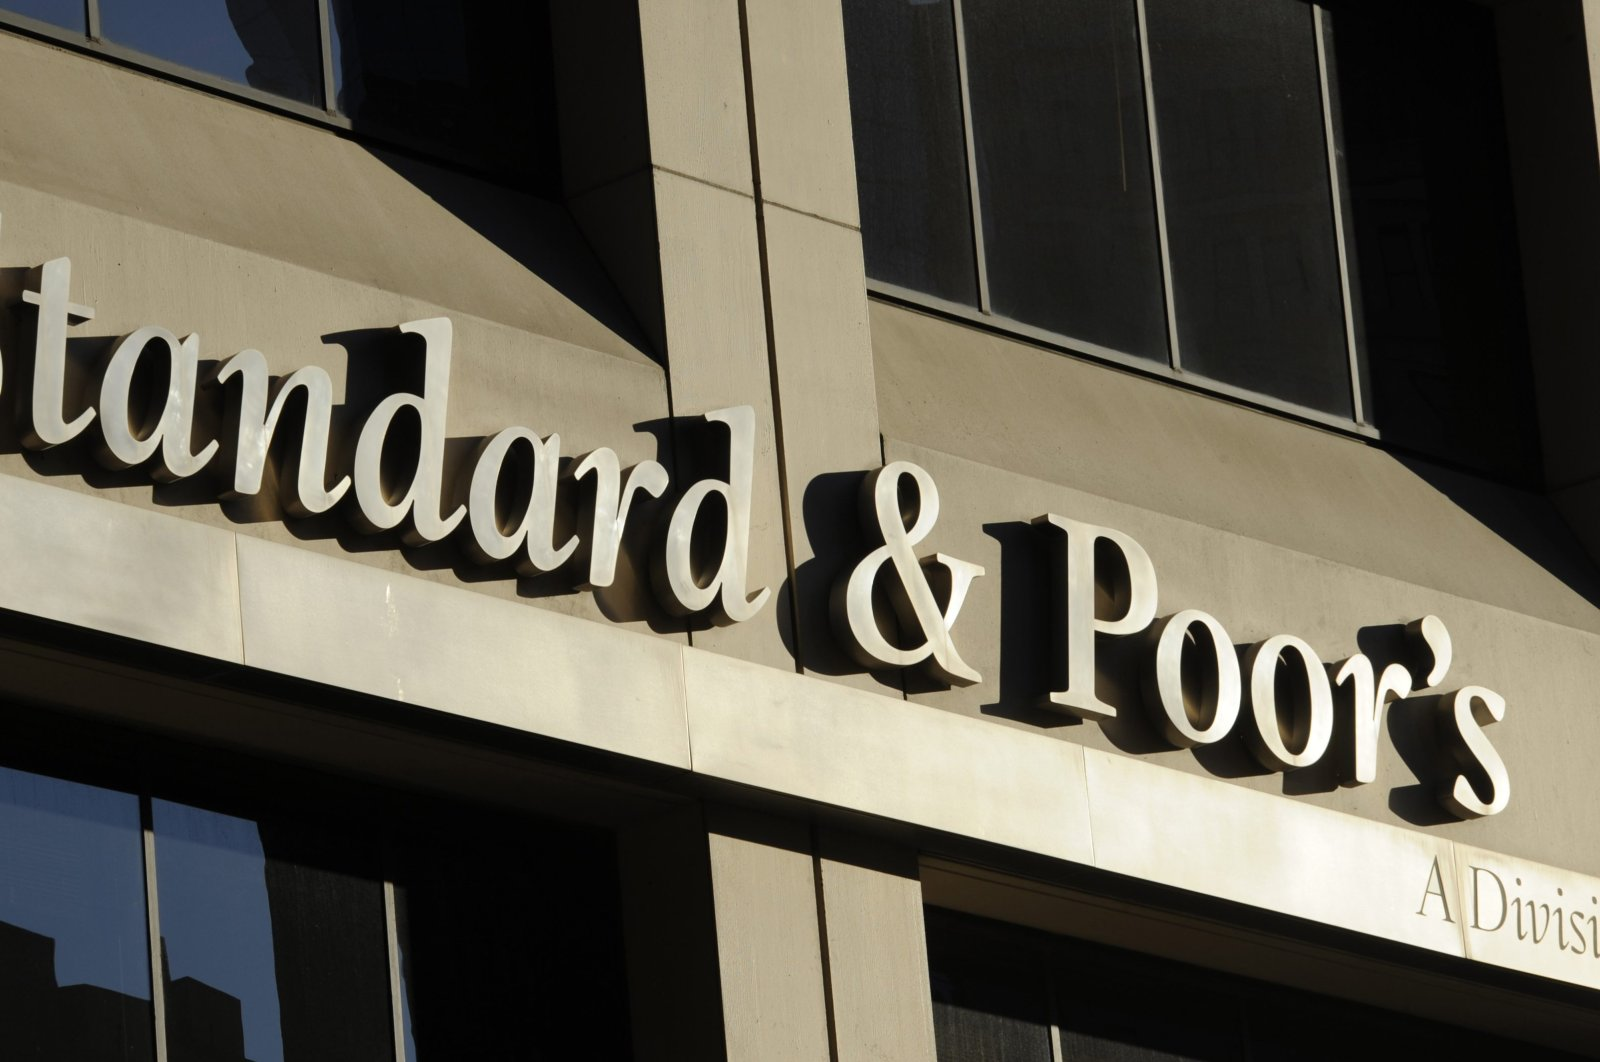 The Standard & Poor's Corp. sign is displayed outside of their headquarters in New York City, New York, U.S. (AP Photo)